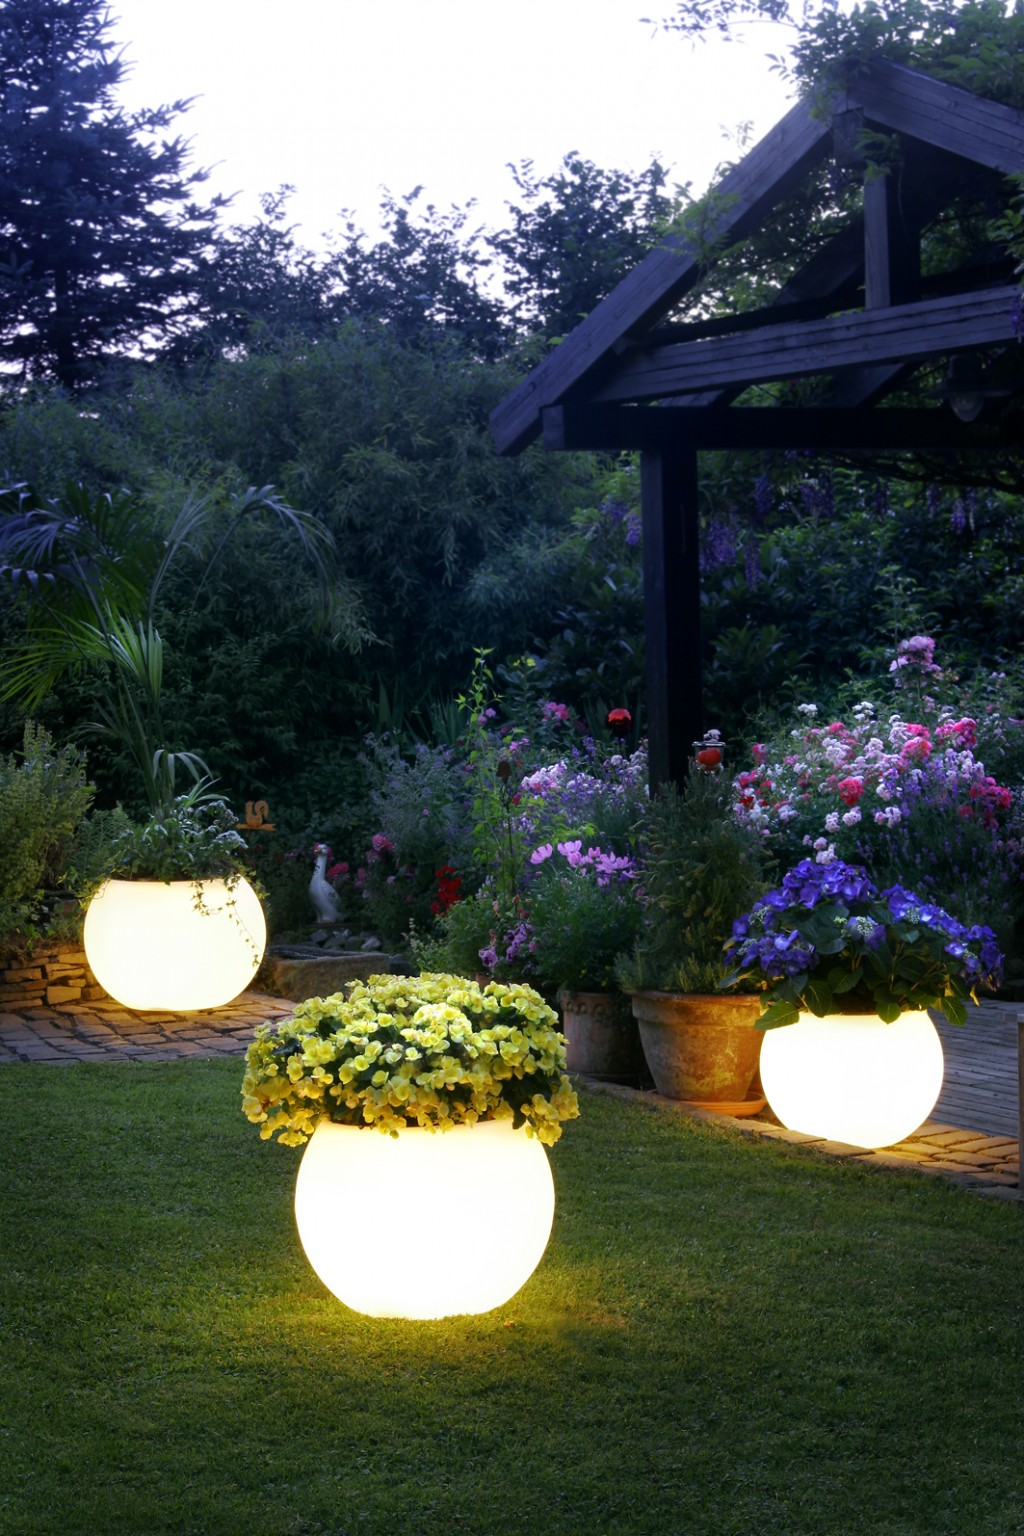 Glow In The Dark Planting Pots 1